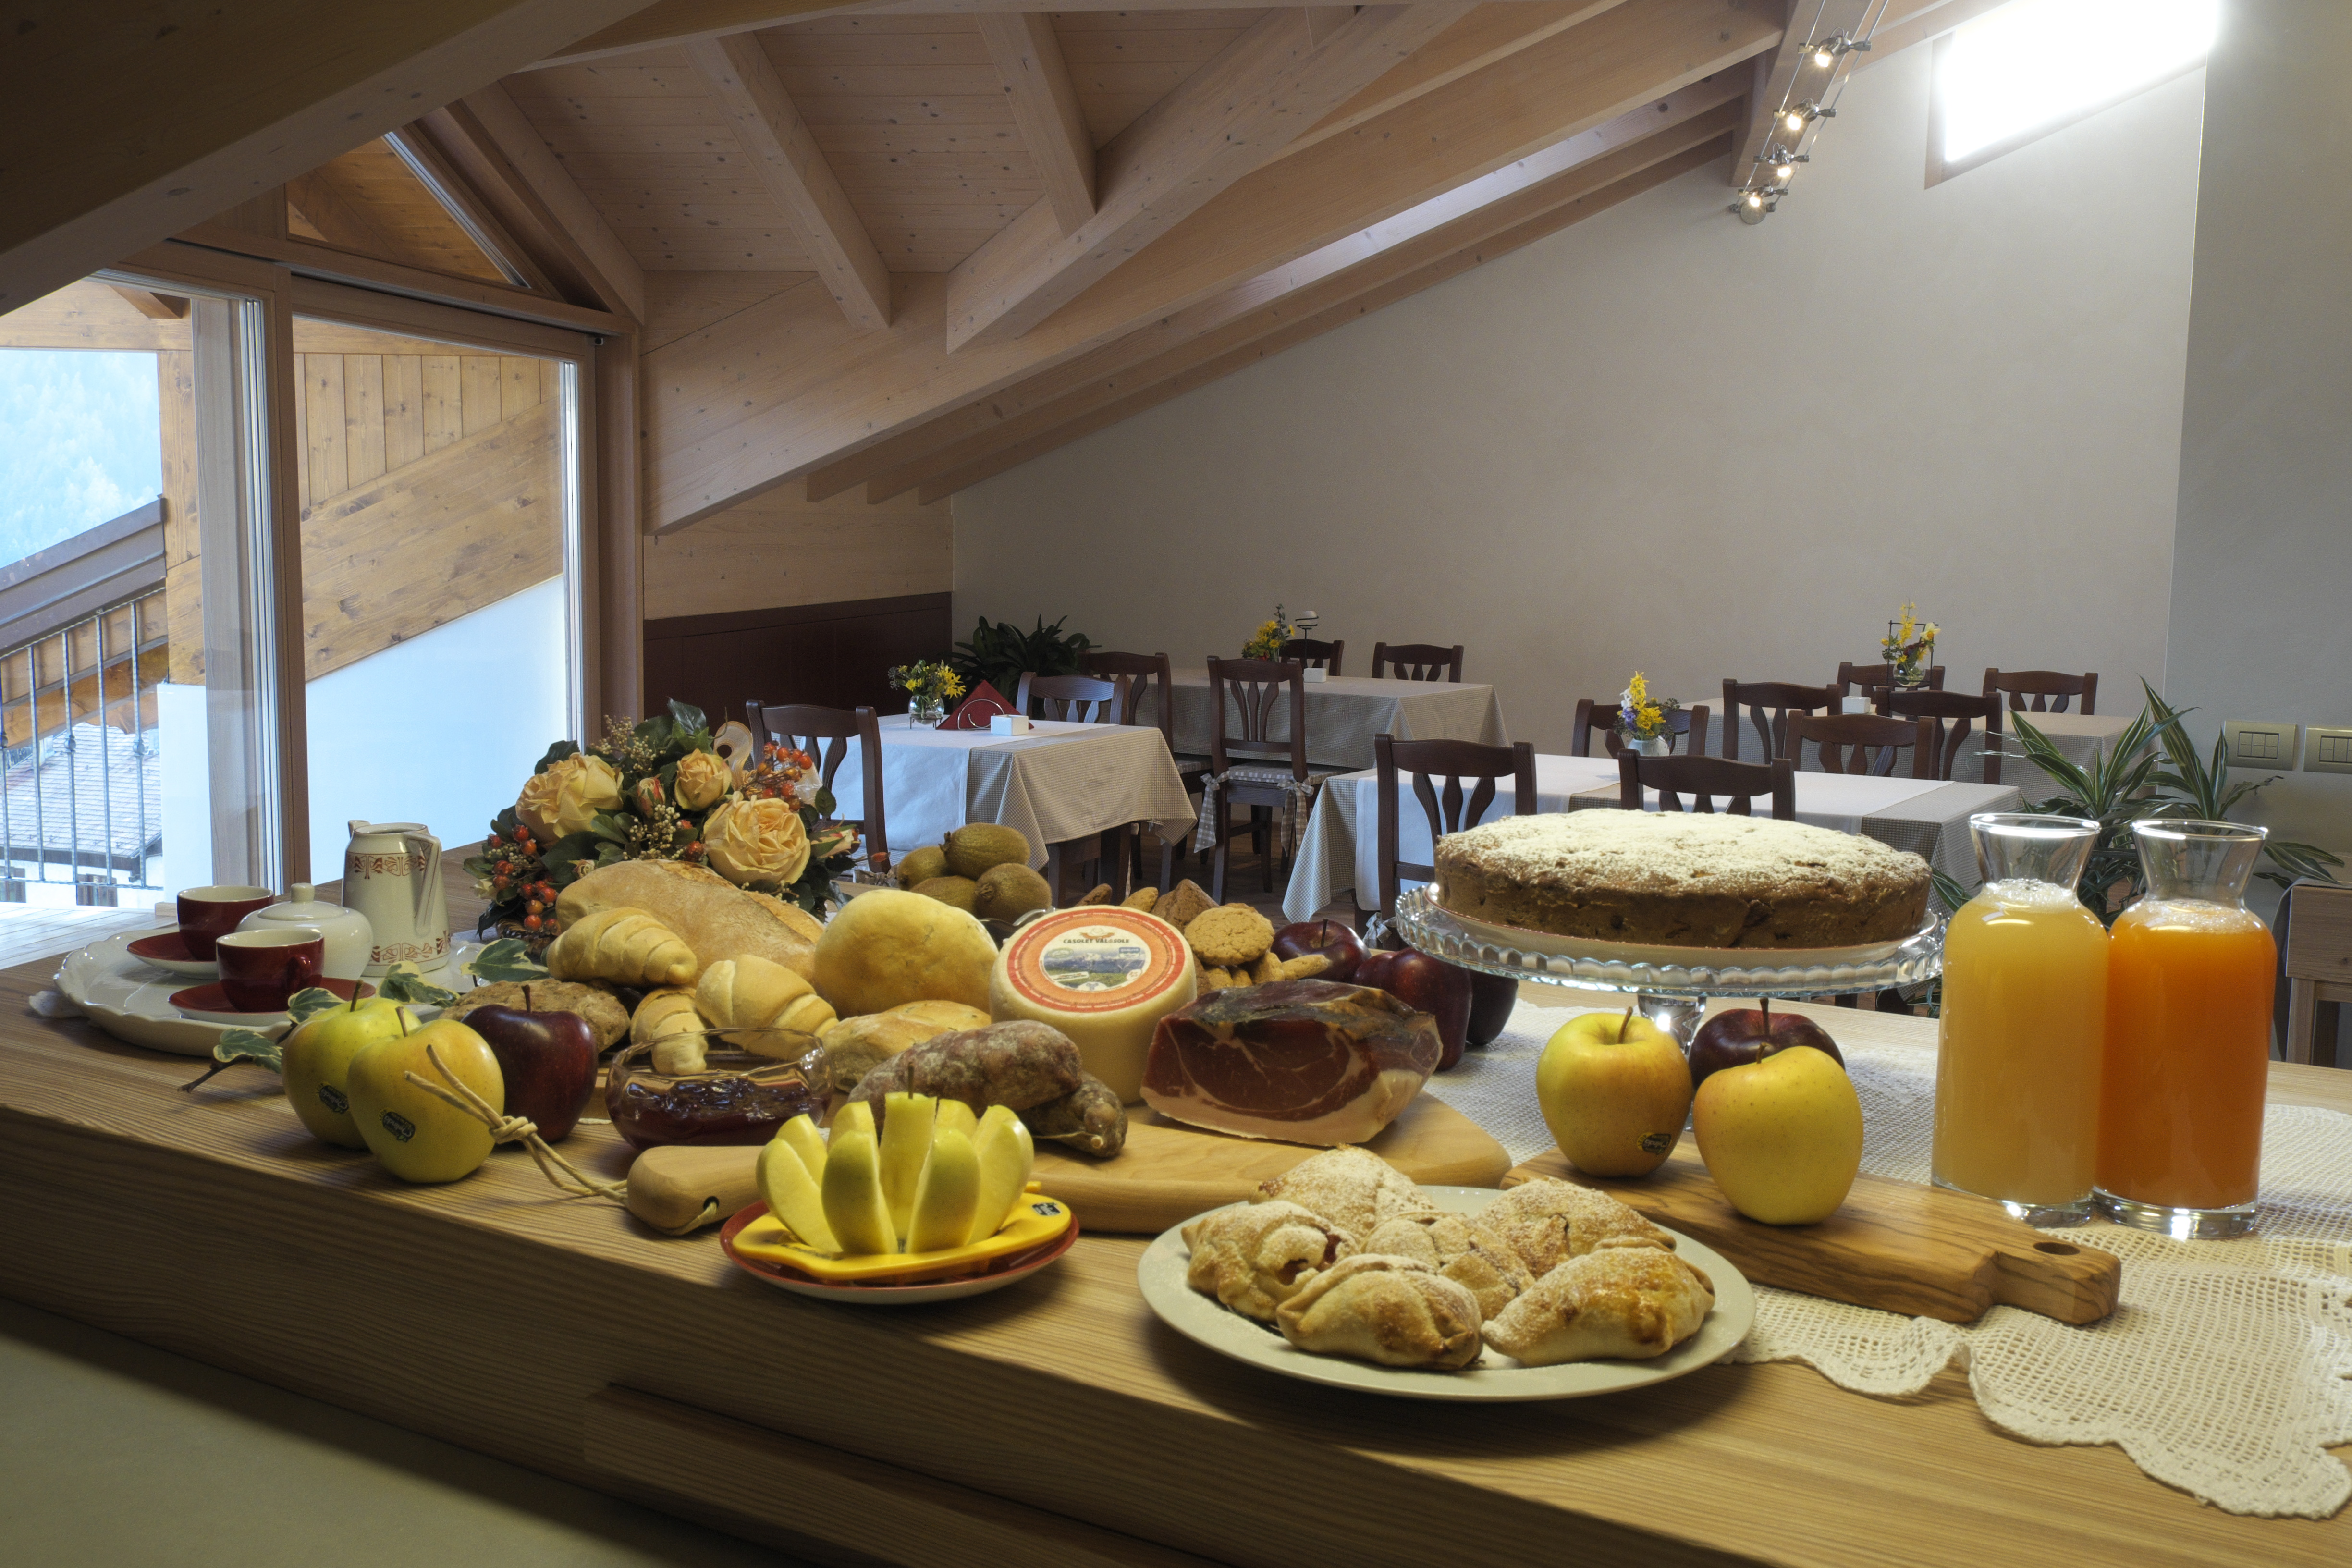 local food, sweets and cakes